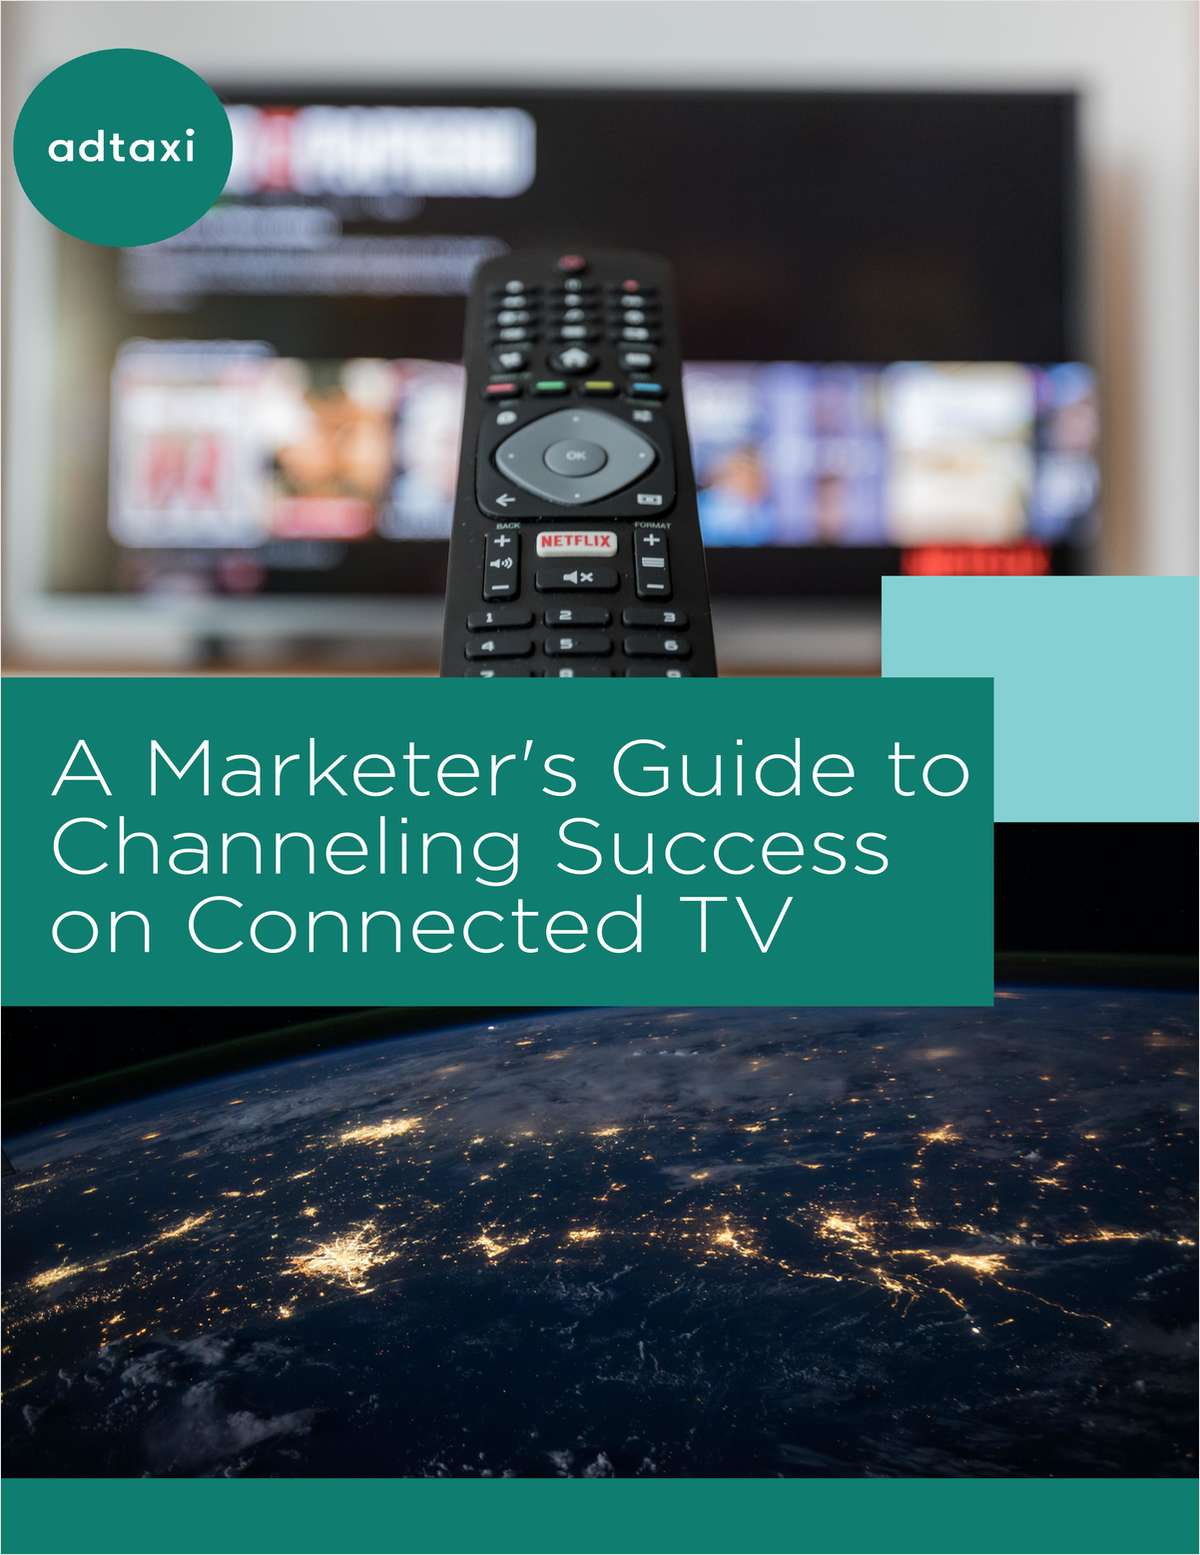 A Marketer's Guide to Channeling Success on Connected TV